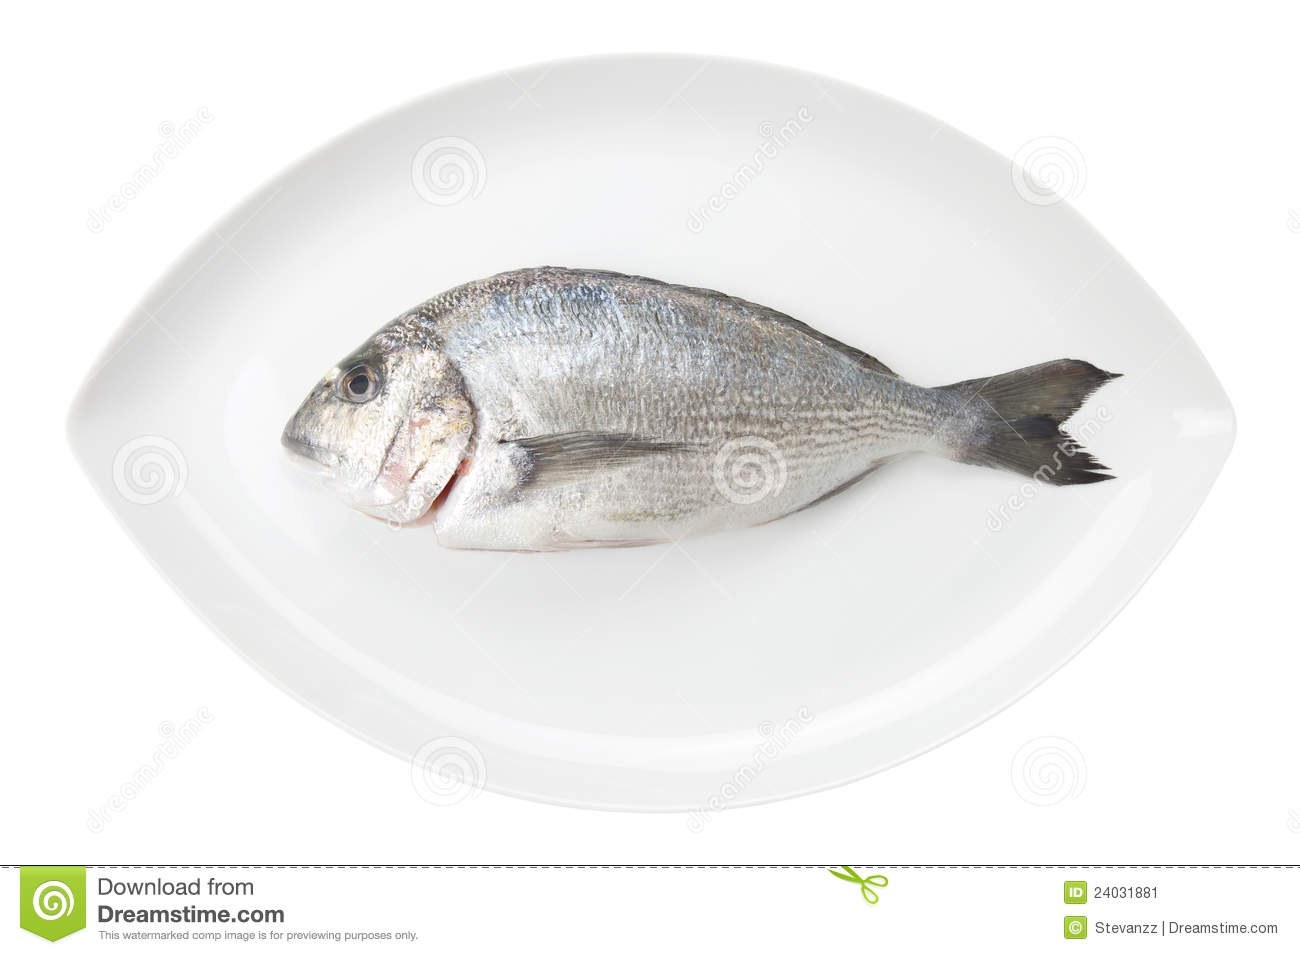 Dorada seafood on a white oval dish. Bream fish.